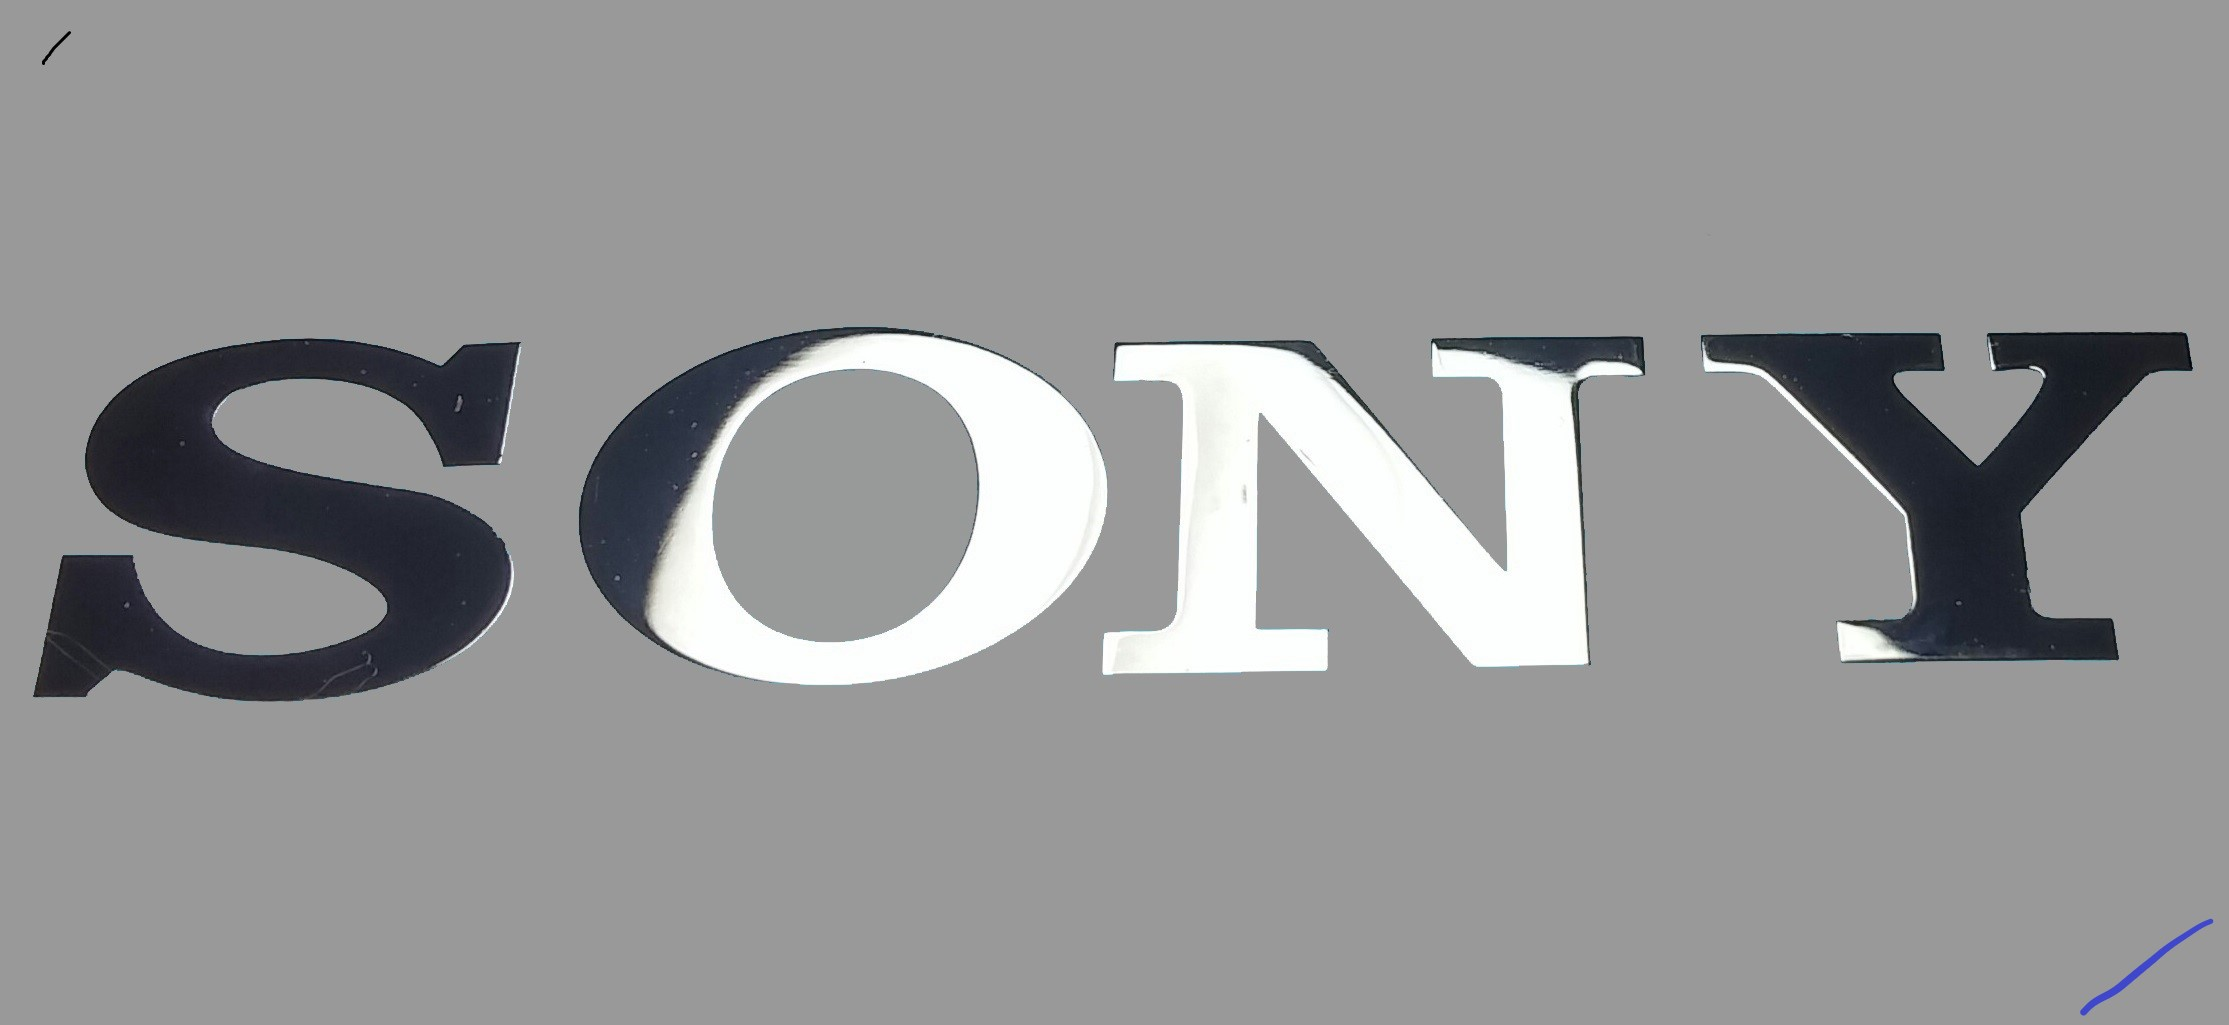 SONY LOGO nalepka Metal Edition